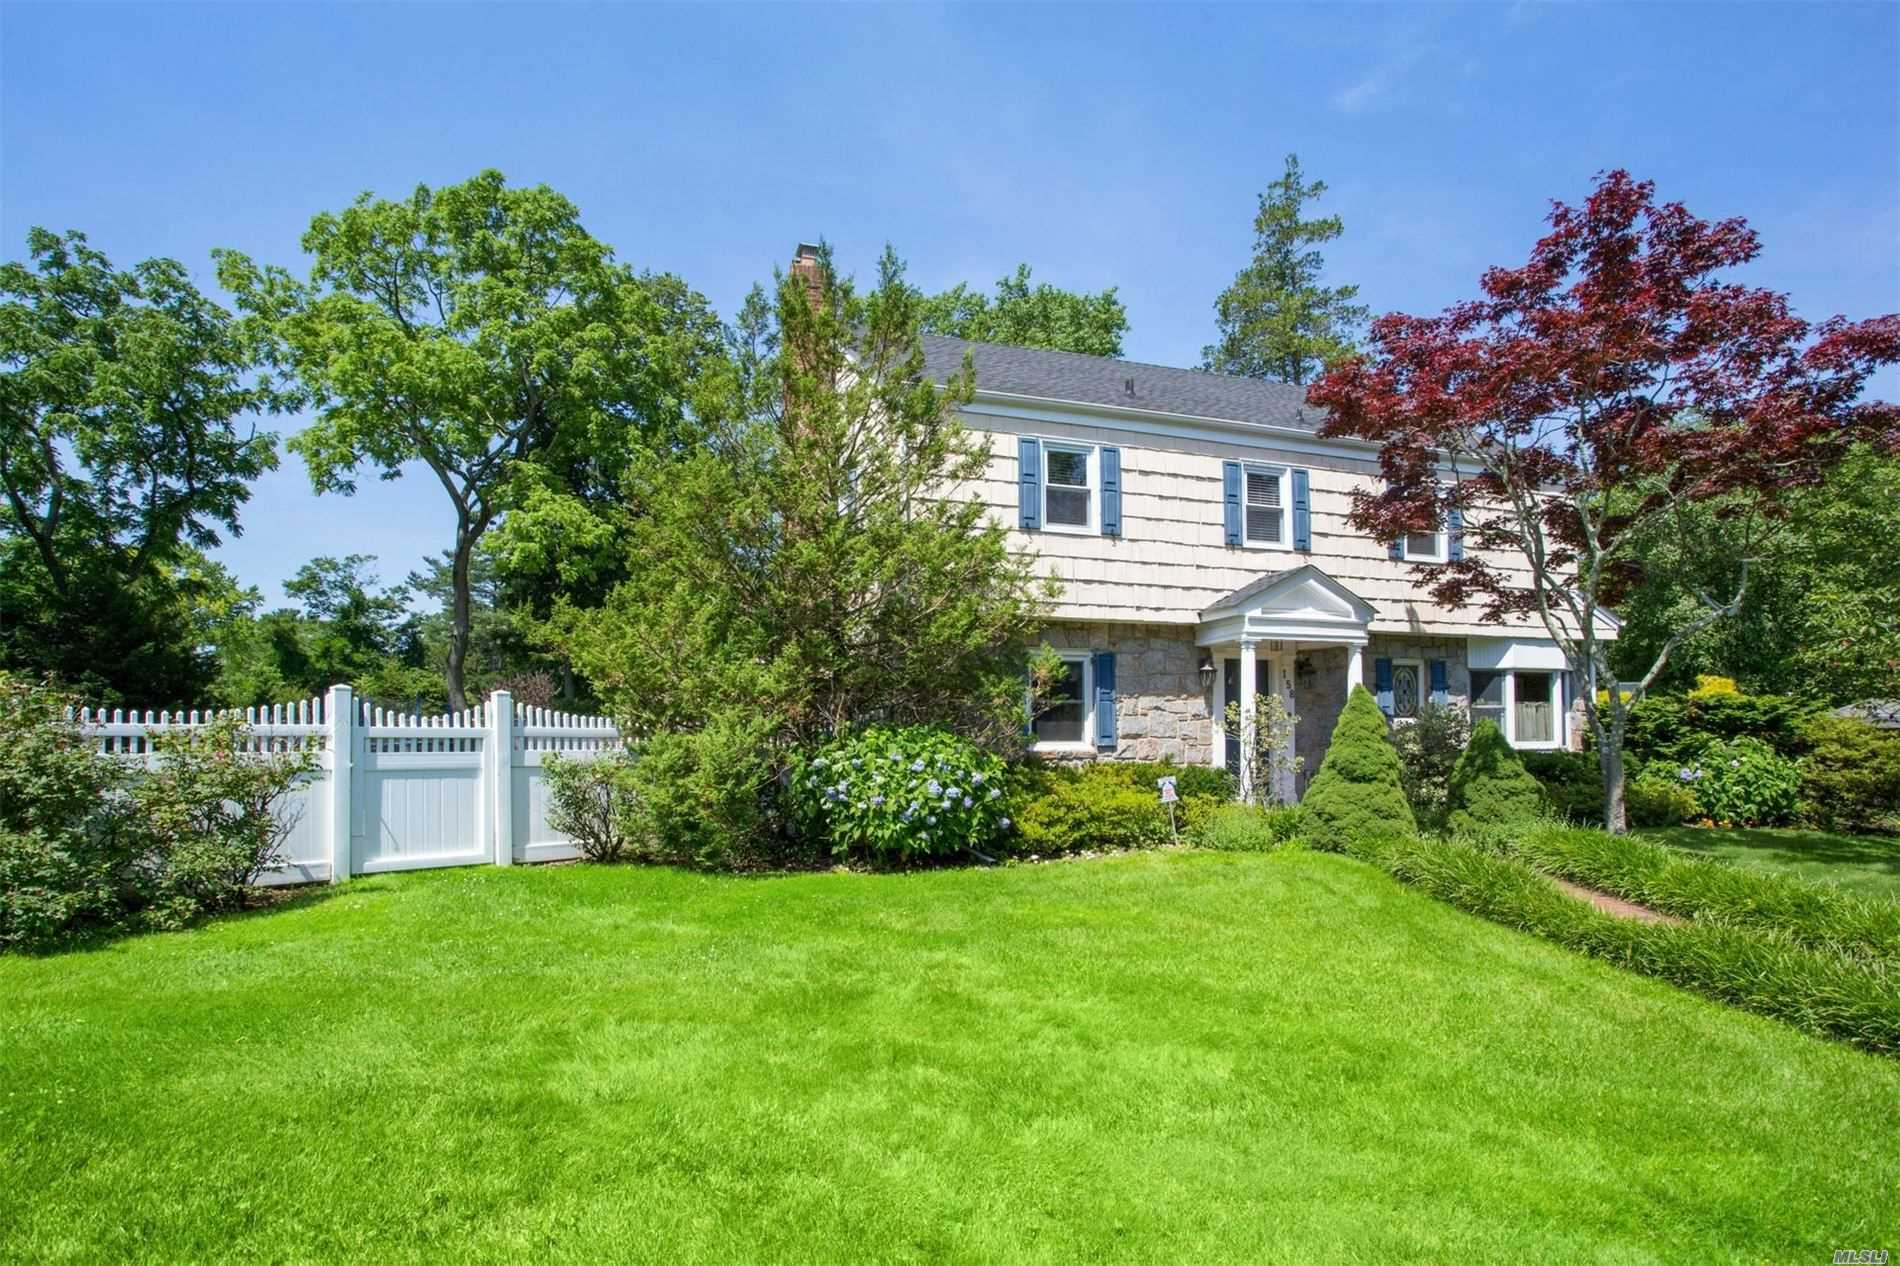 158 Schenck Cir - Hewlett Harbor, New York